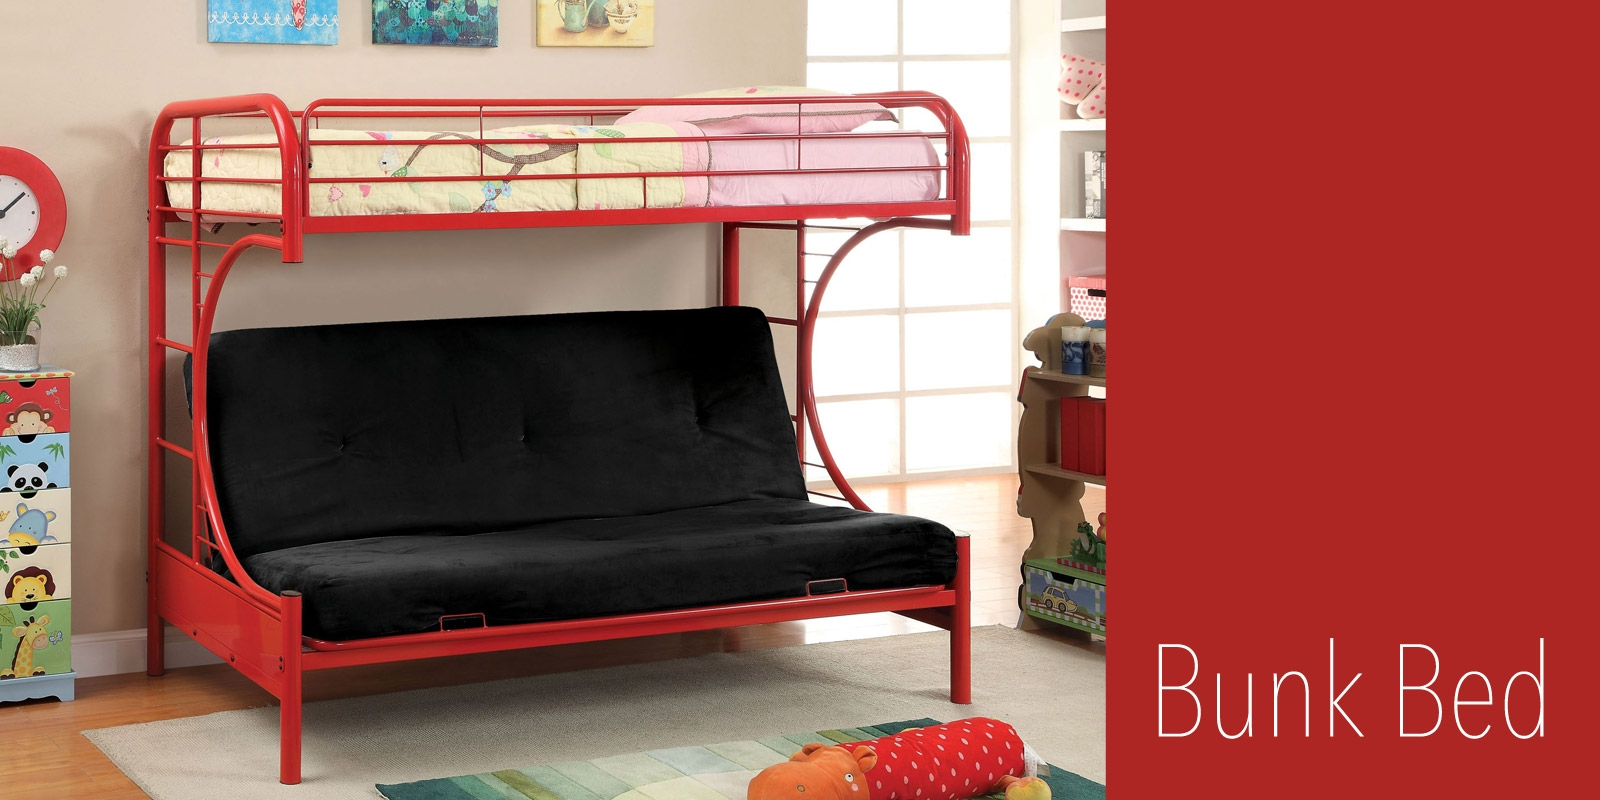 Bunk Bed With Double Futon Underneath